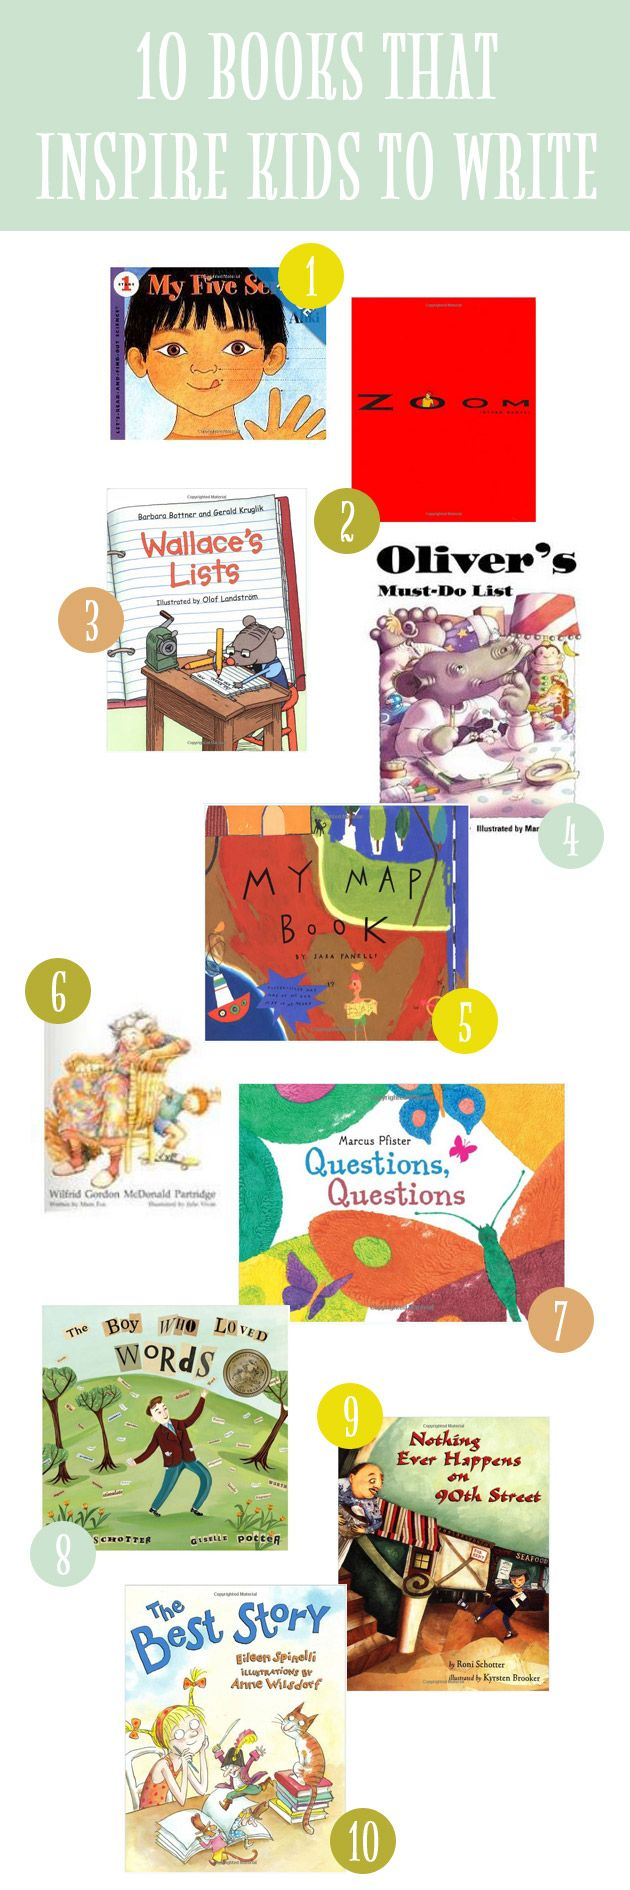 best images about writing workshop anchor charts 10 books that inspire kids to write my husband brett homer collins writes and sketches he is a decedent of winslow homer collins